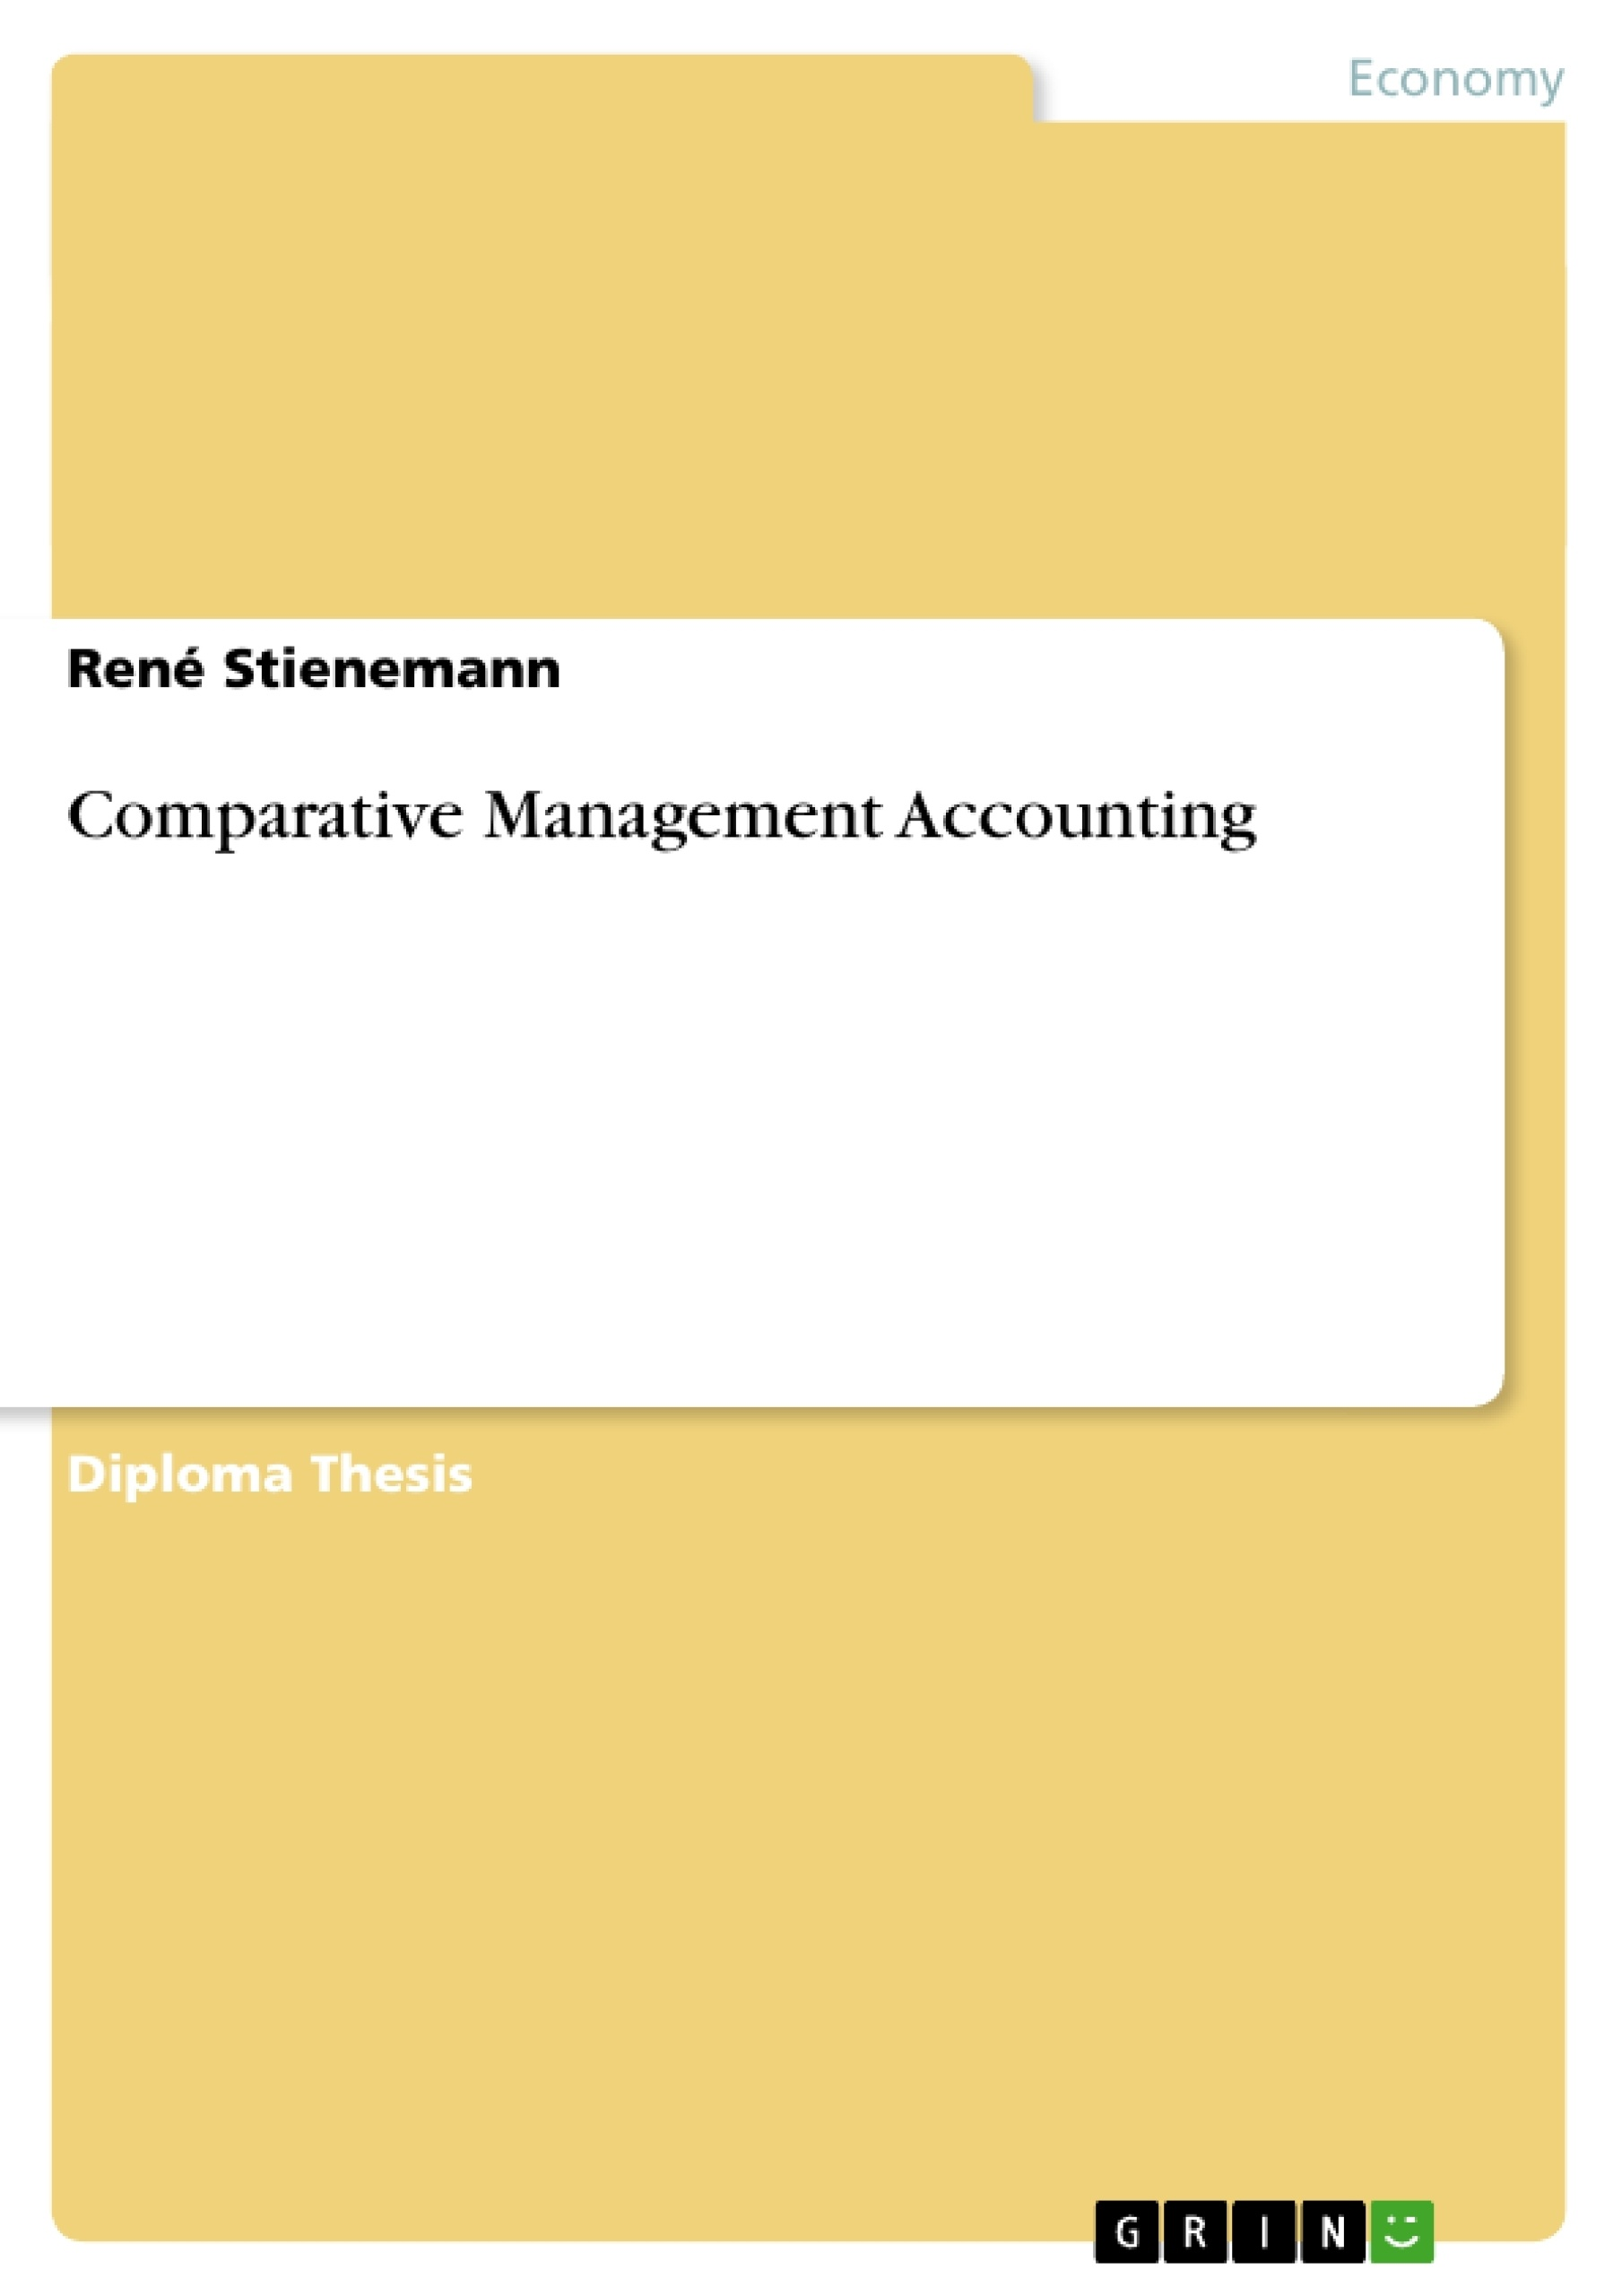 master thesis topics in accounting and finance